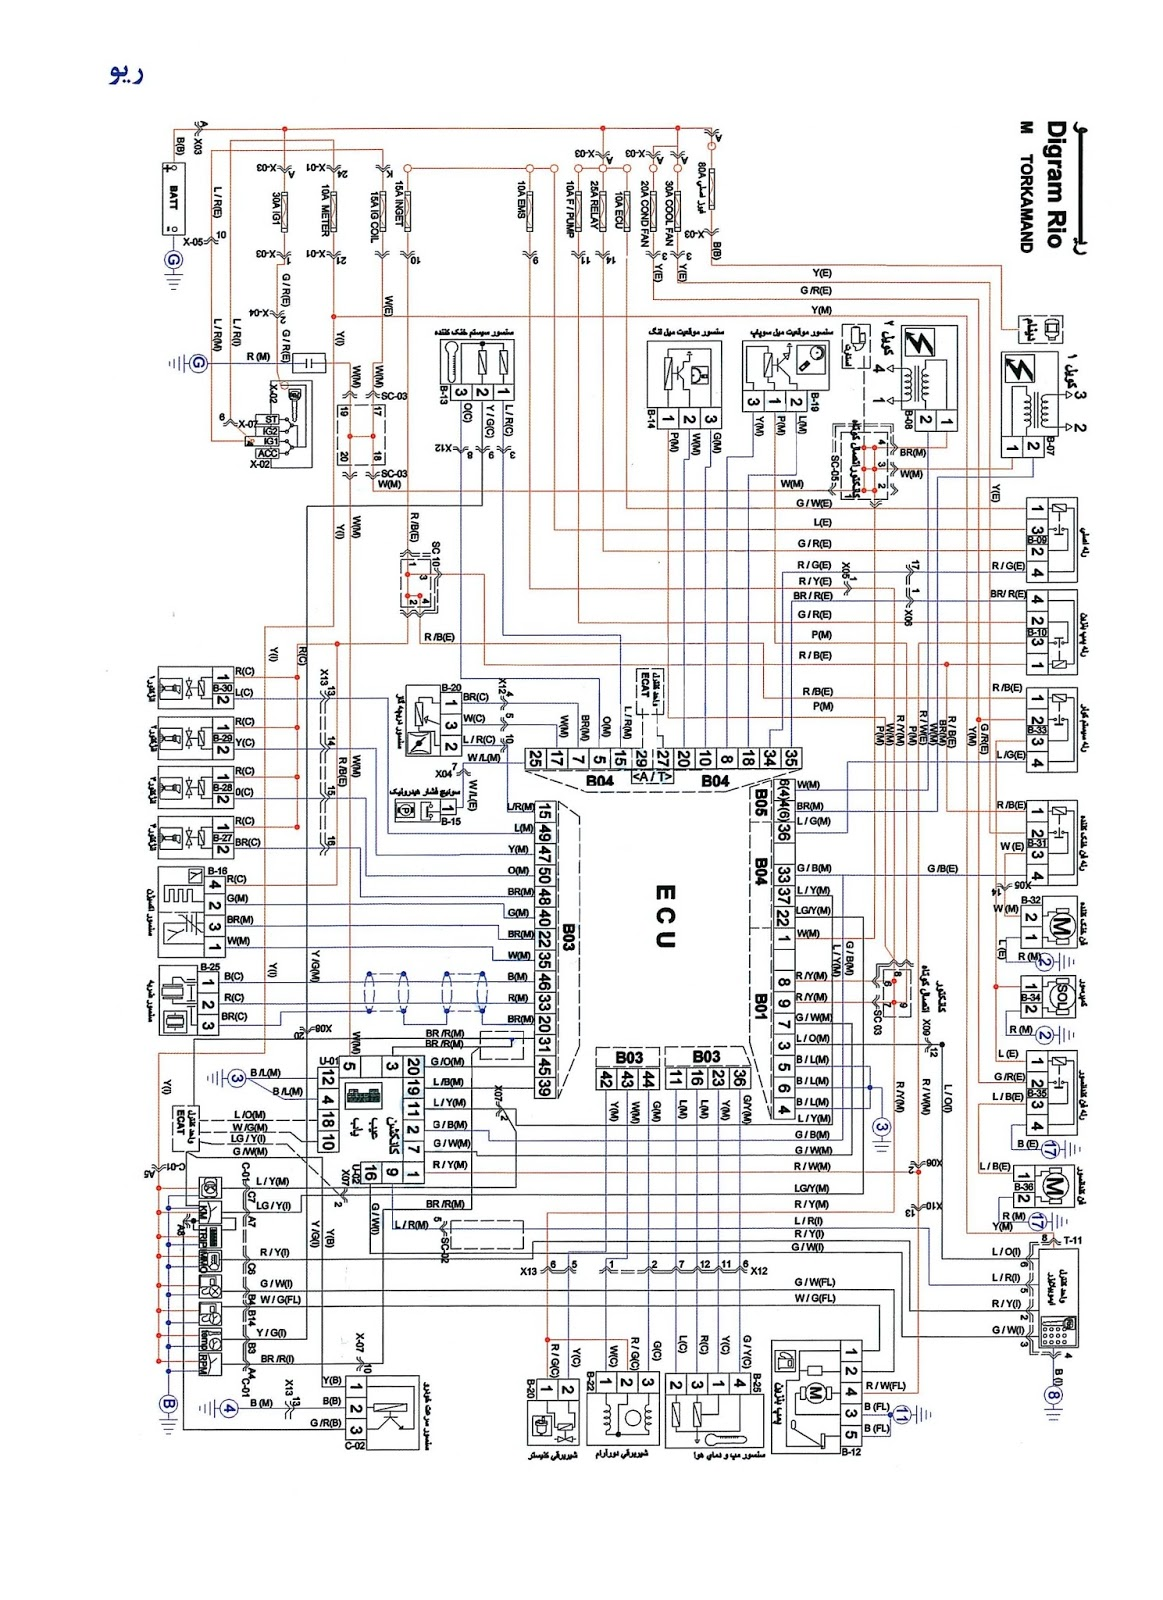 Auto Electrical Repairs: Automotive wiring maps of KIA RIO